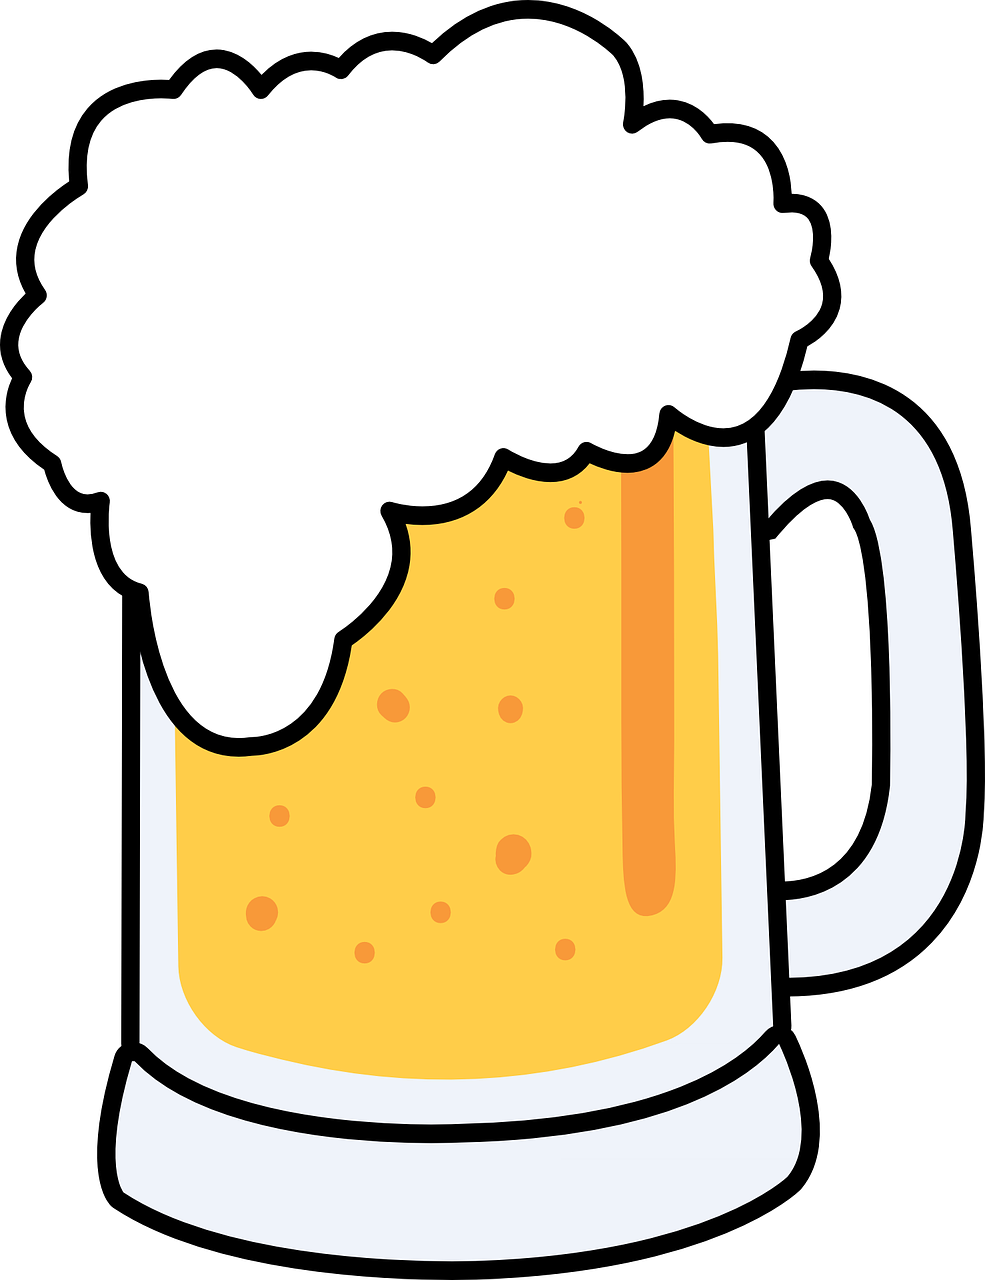 Beer mugs comic clipart free jpg library download Beer free to use clip art - ClipartBarn jpg library download